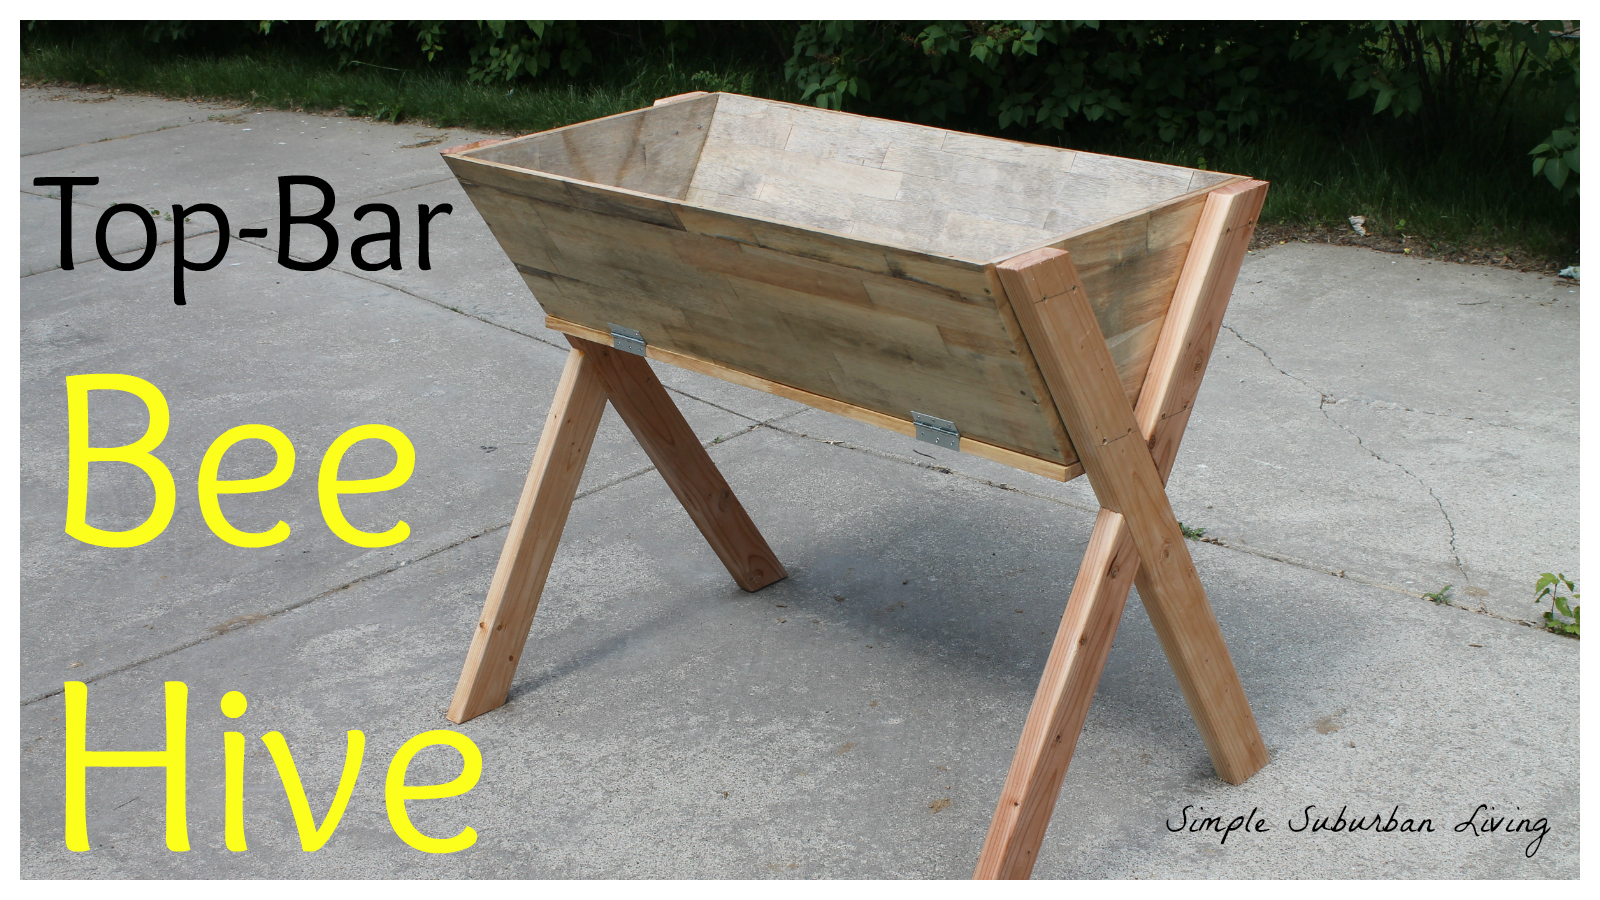 Top- Bar Bee Hive From Reclaimed Materials - Building the ...